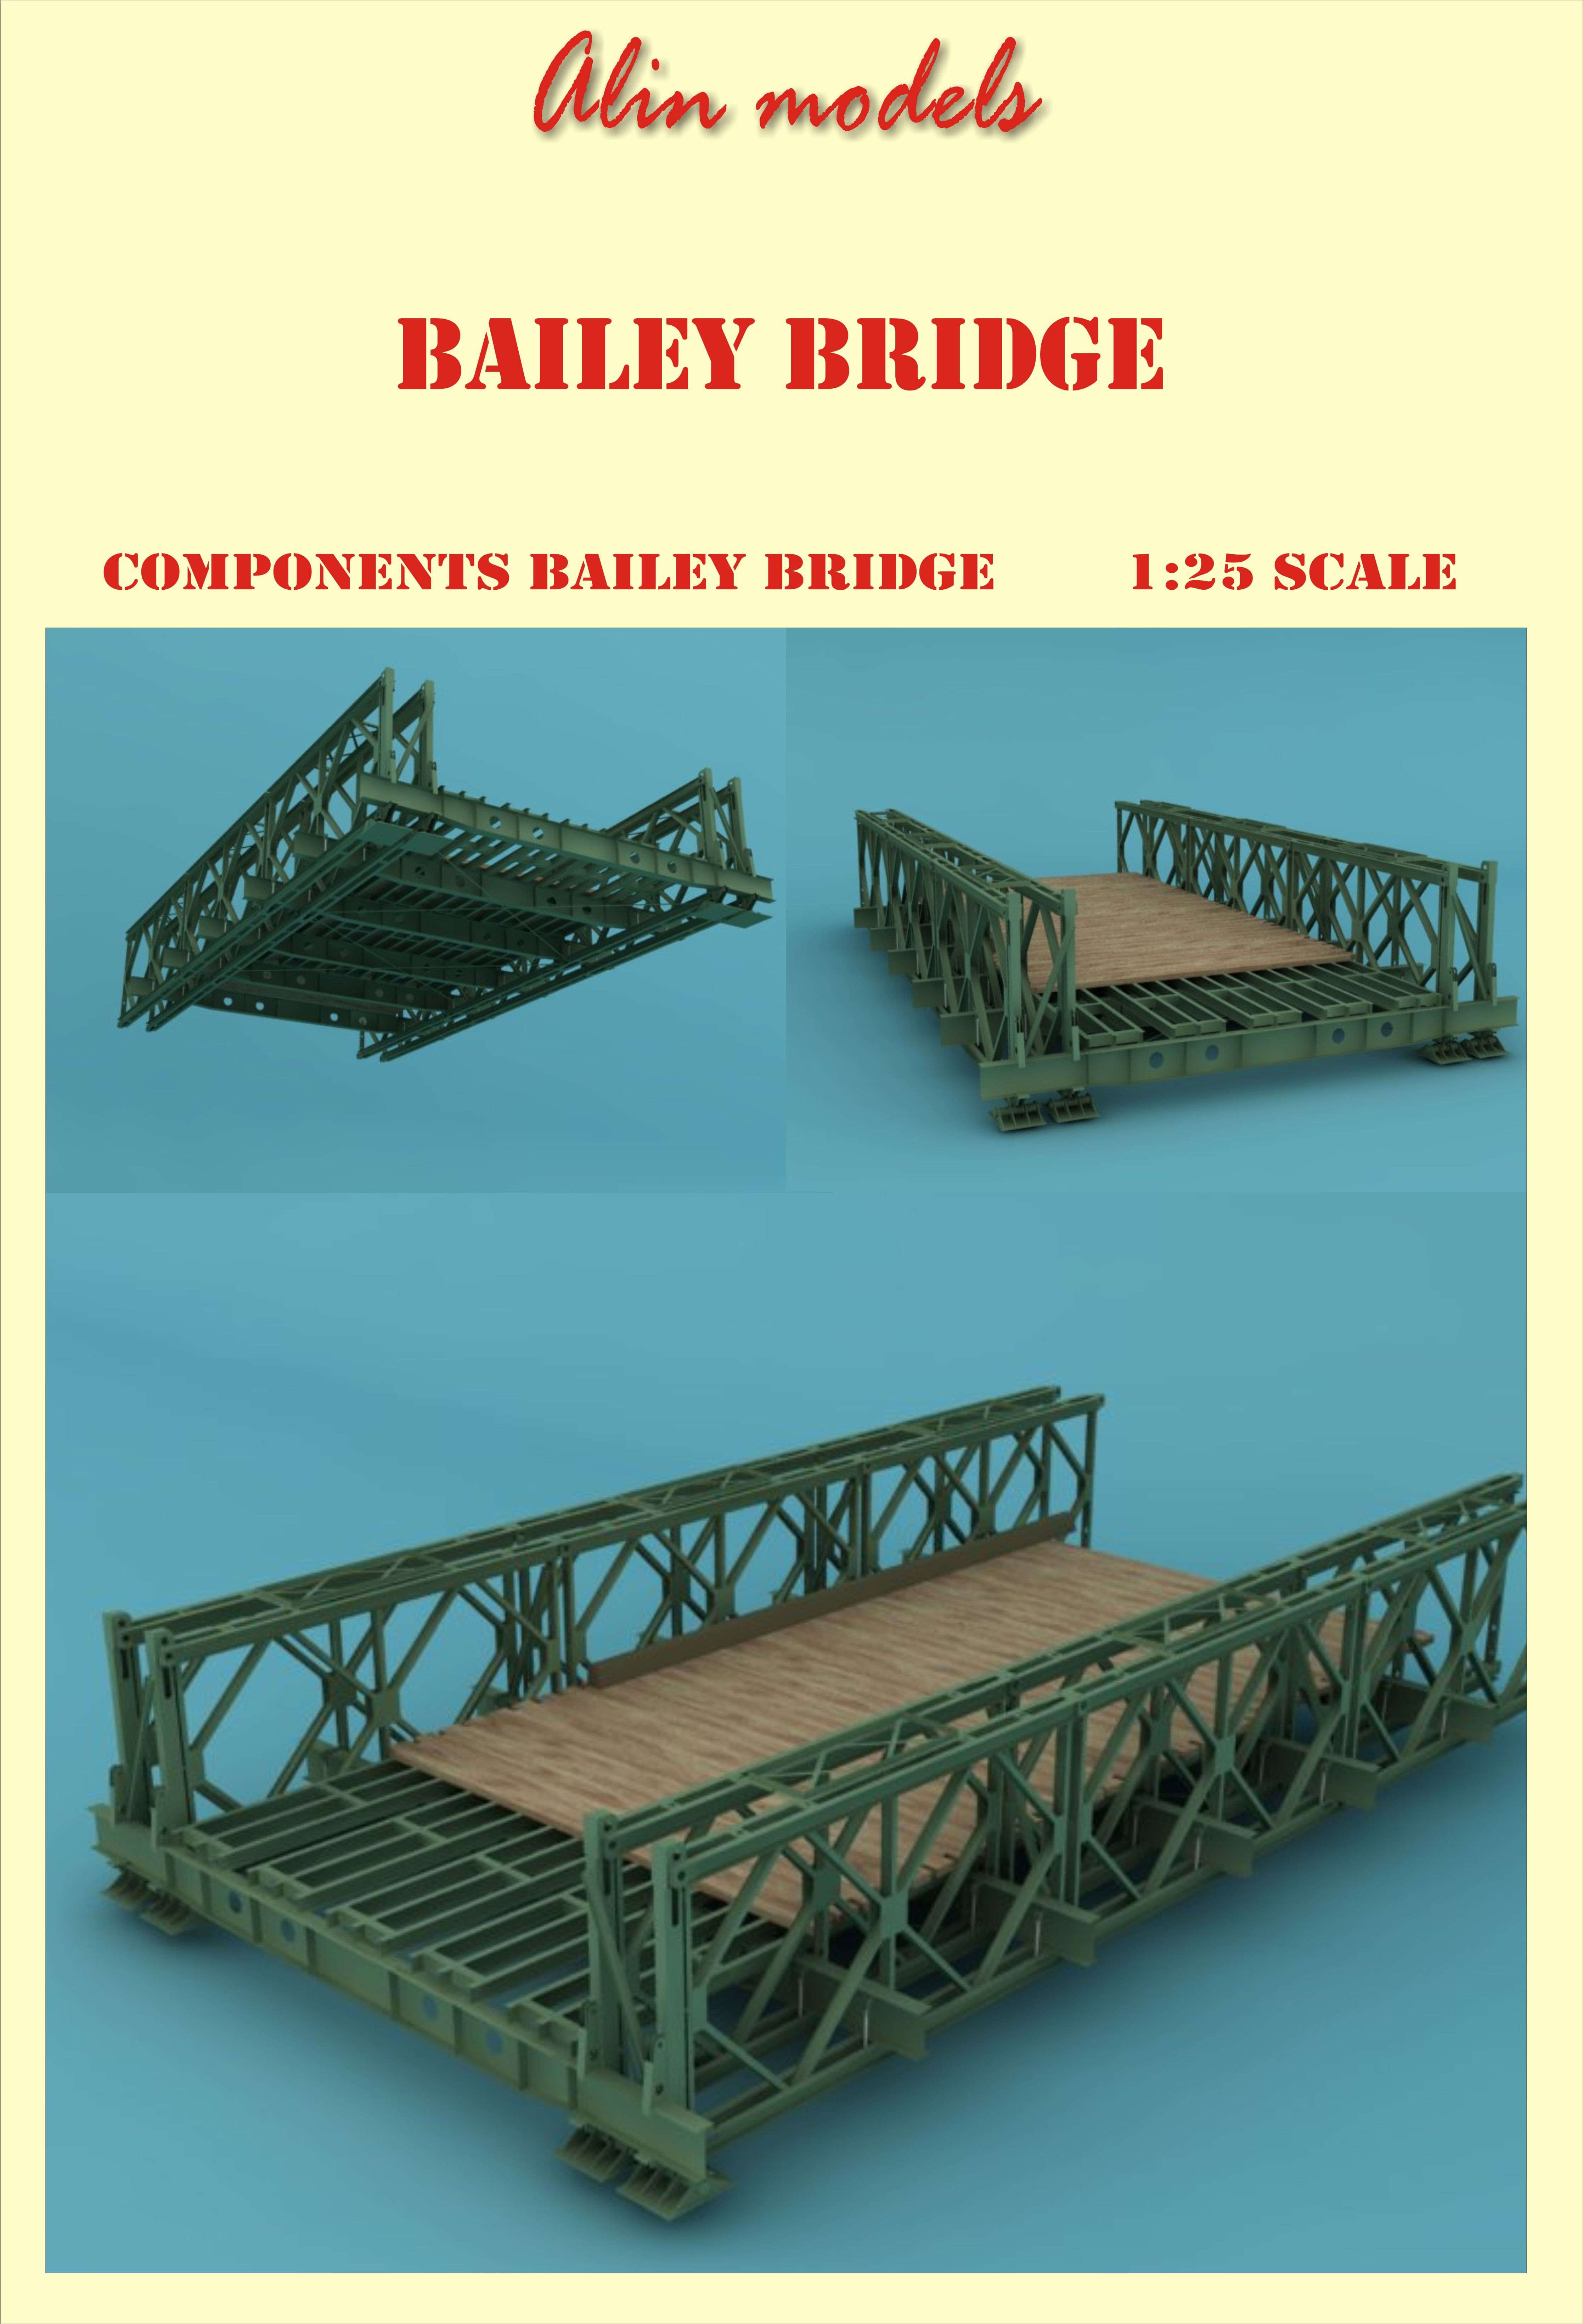 001 Bailey bridge.jpg